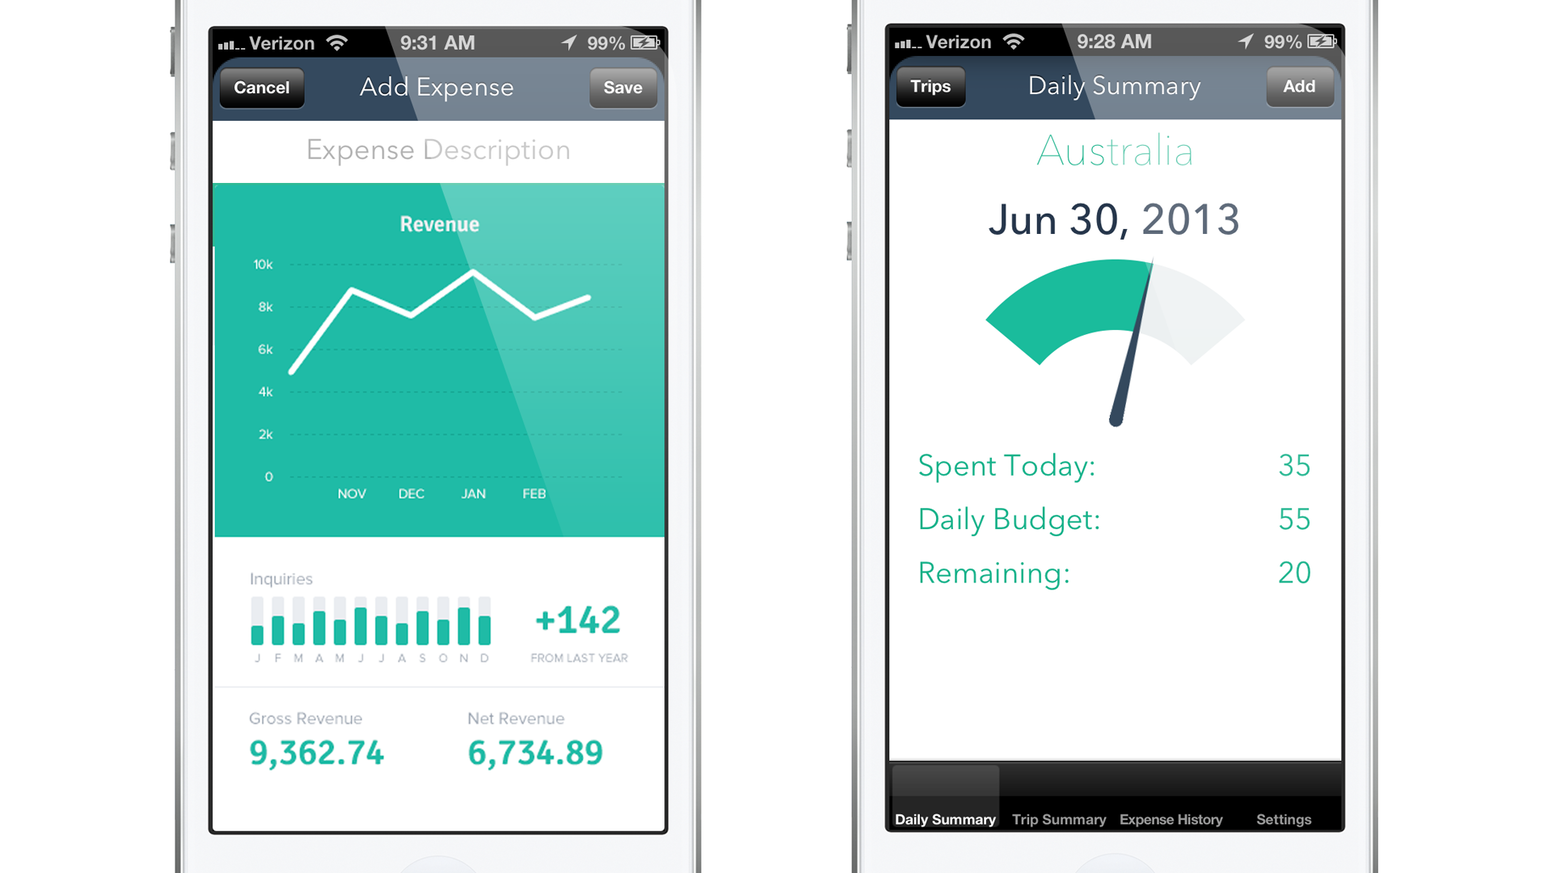 TripSaver: The Ultimate Travel Budgeting App by Matt Kepnes